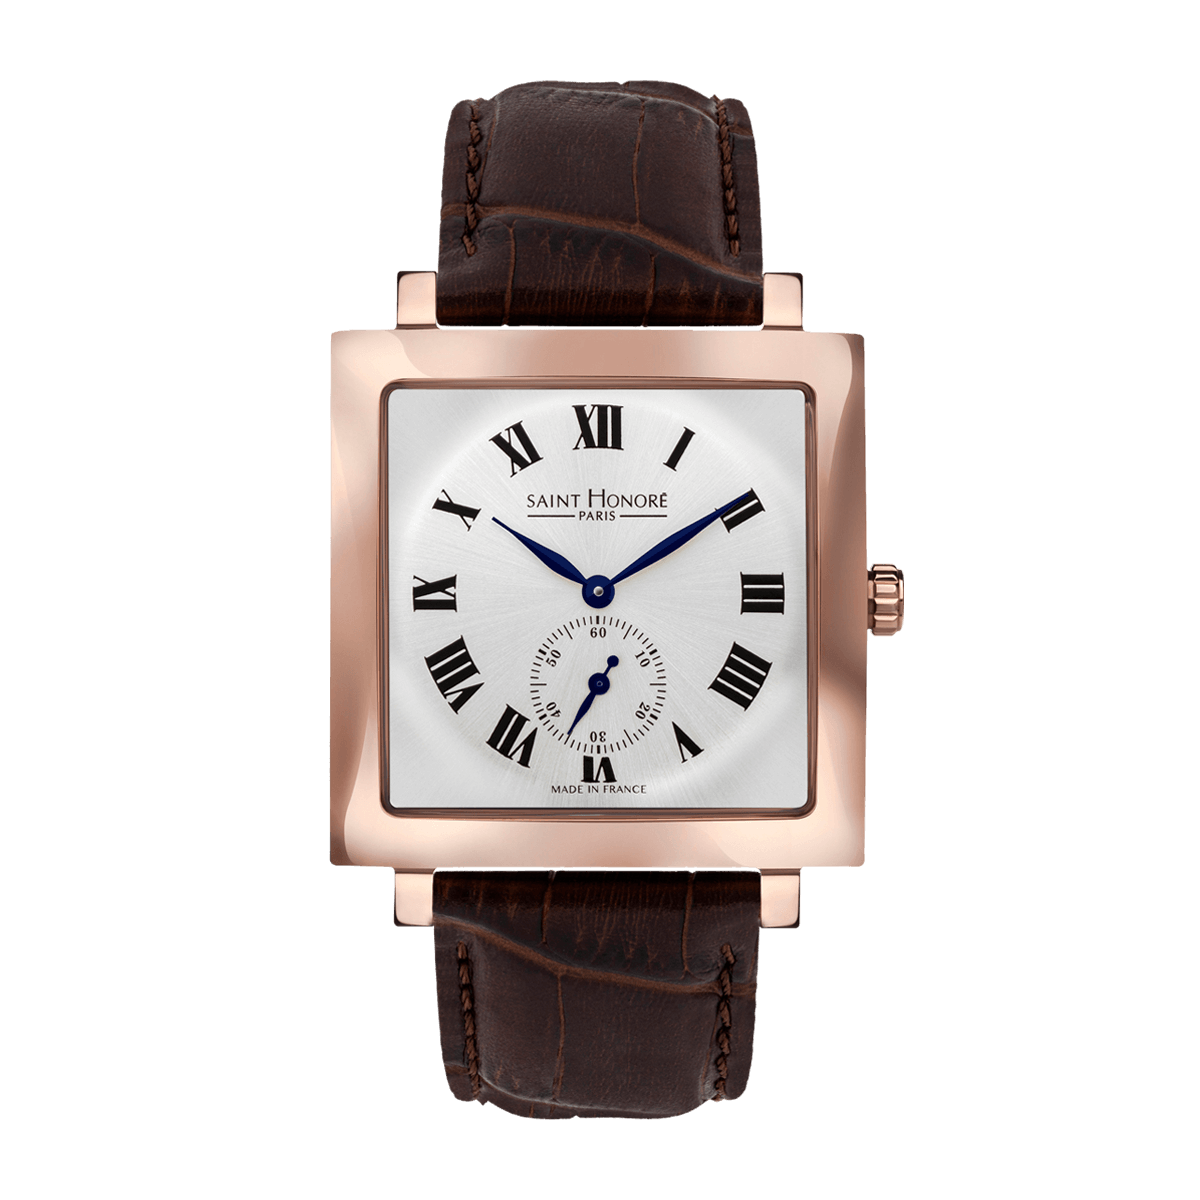 CARREE Men's watch - Square rose gold finish case, silver dial, brown leather strap